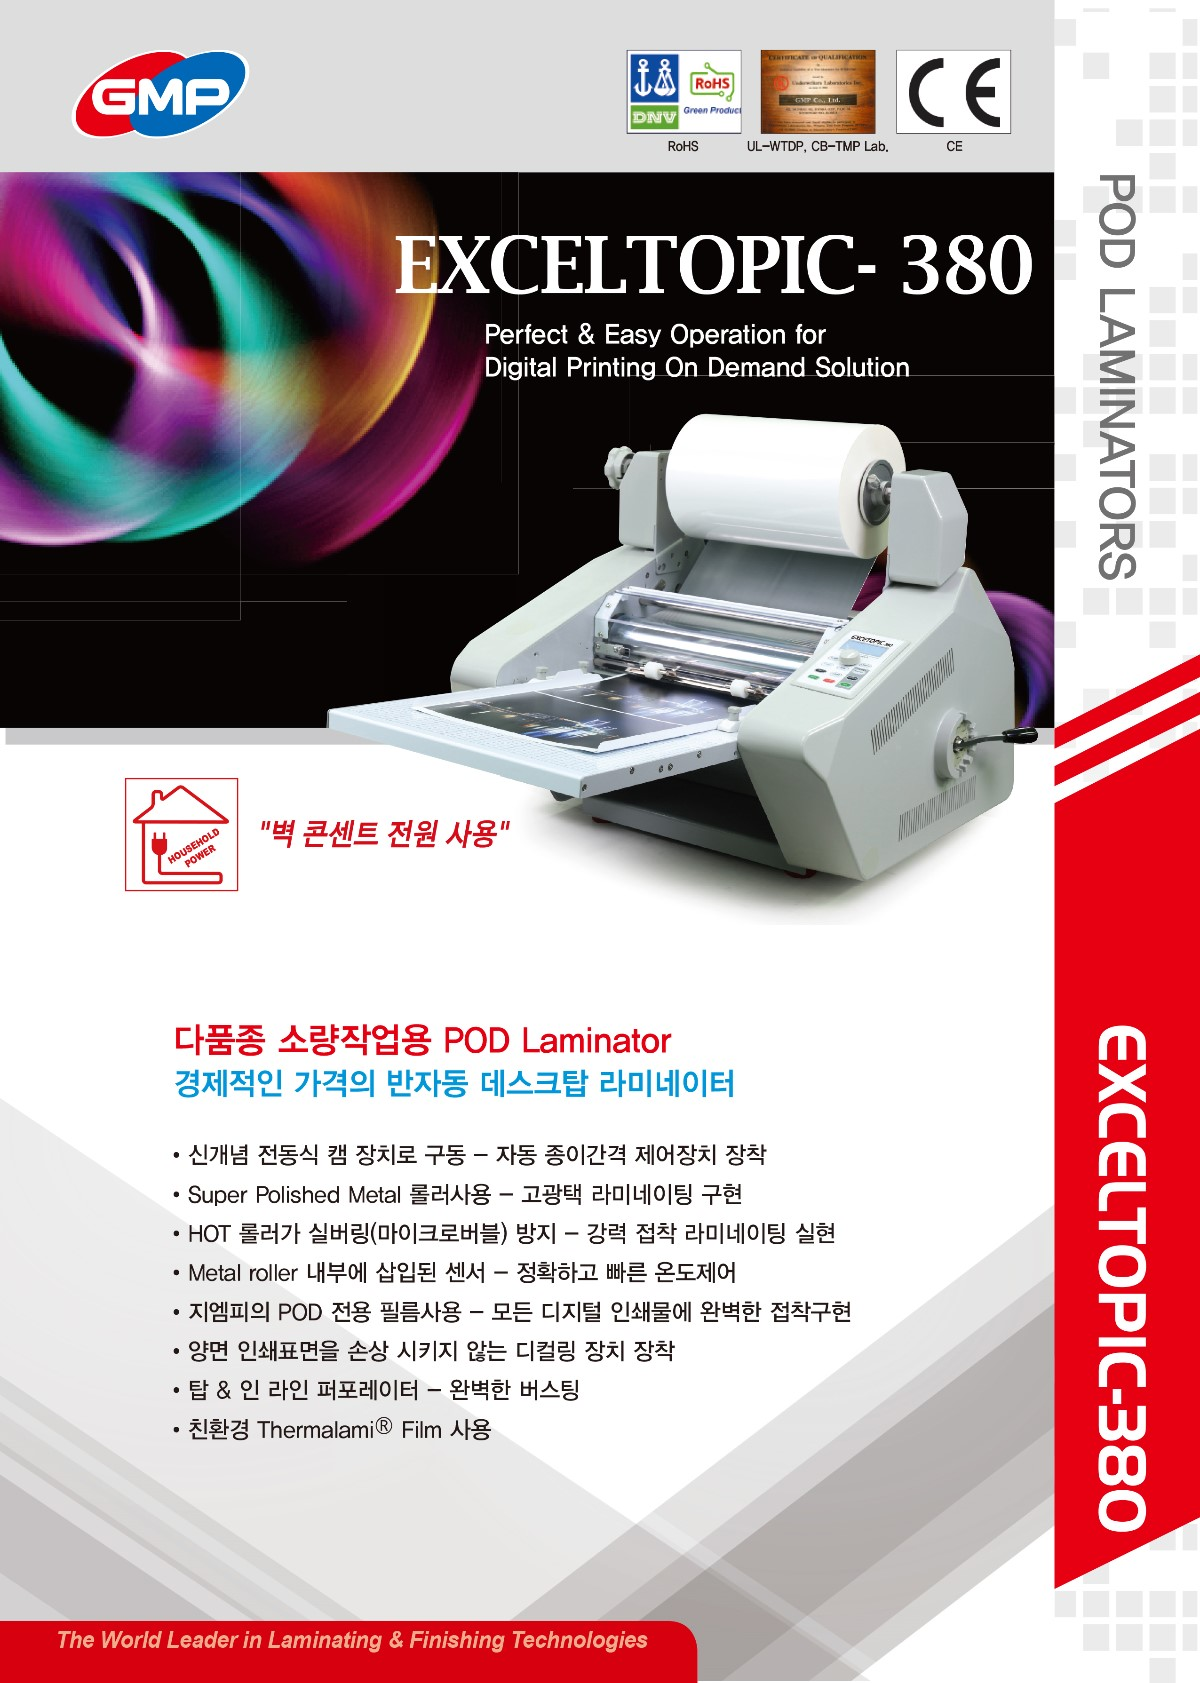 NEW-EXCELTOPIC-380_국문_-1.jpg